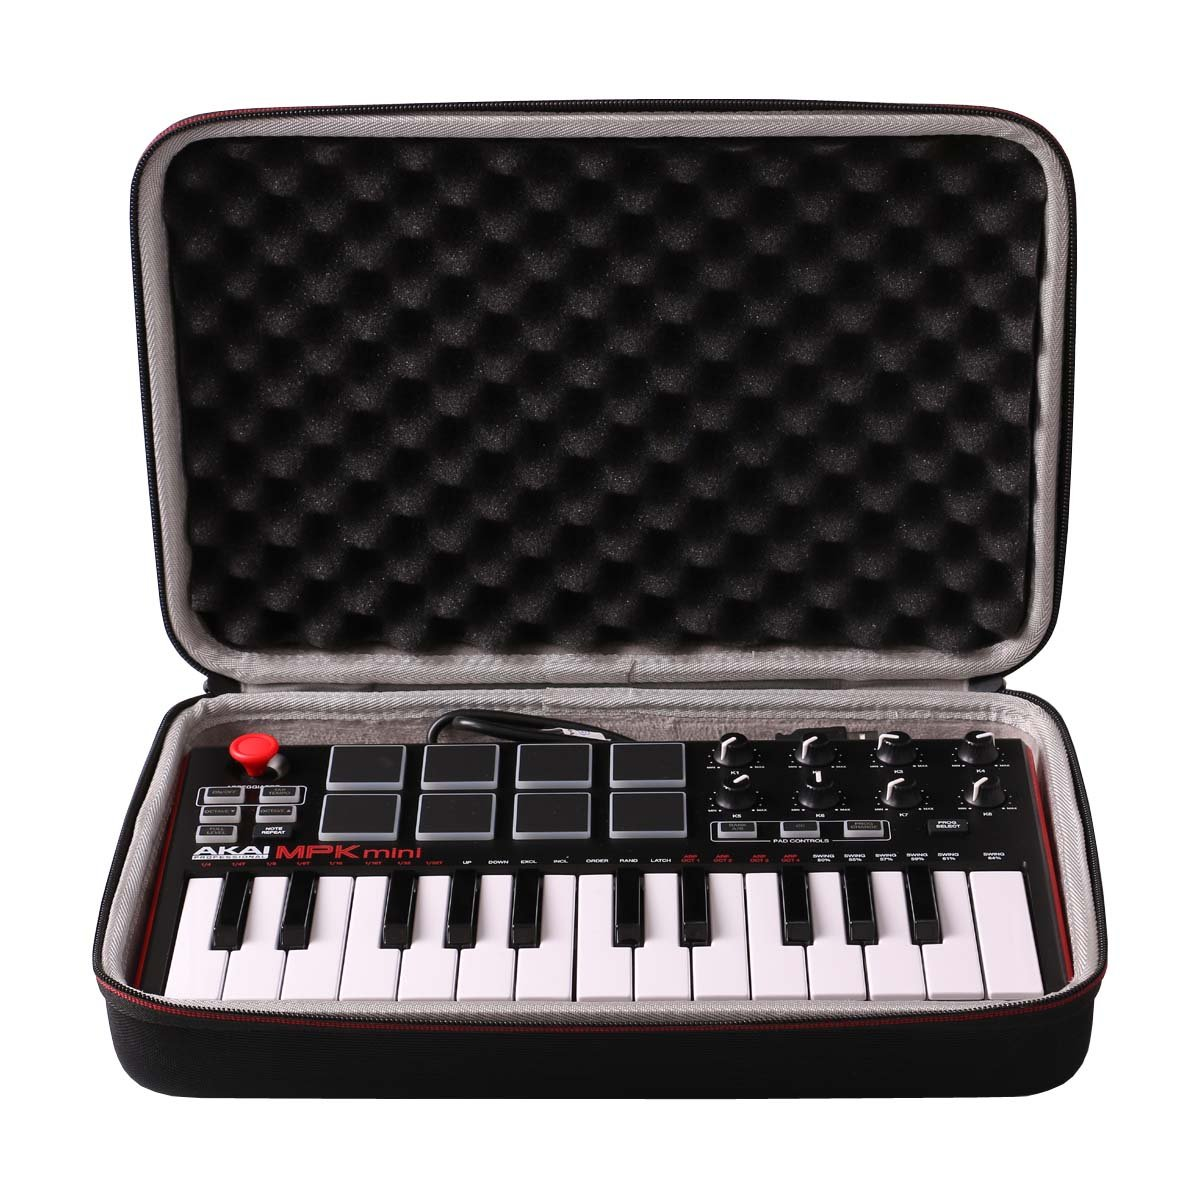 LTGEM Travel Hard Carrying Case for Akai Professional MPK Mini MKII | 25-Key Ultra-Portable USB MIDI Drum Pad & Keyboard Controller by LTGEM